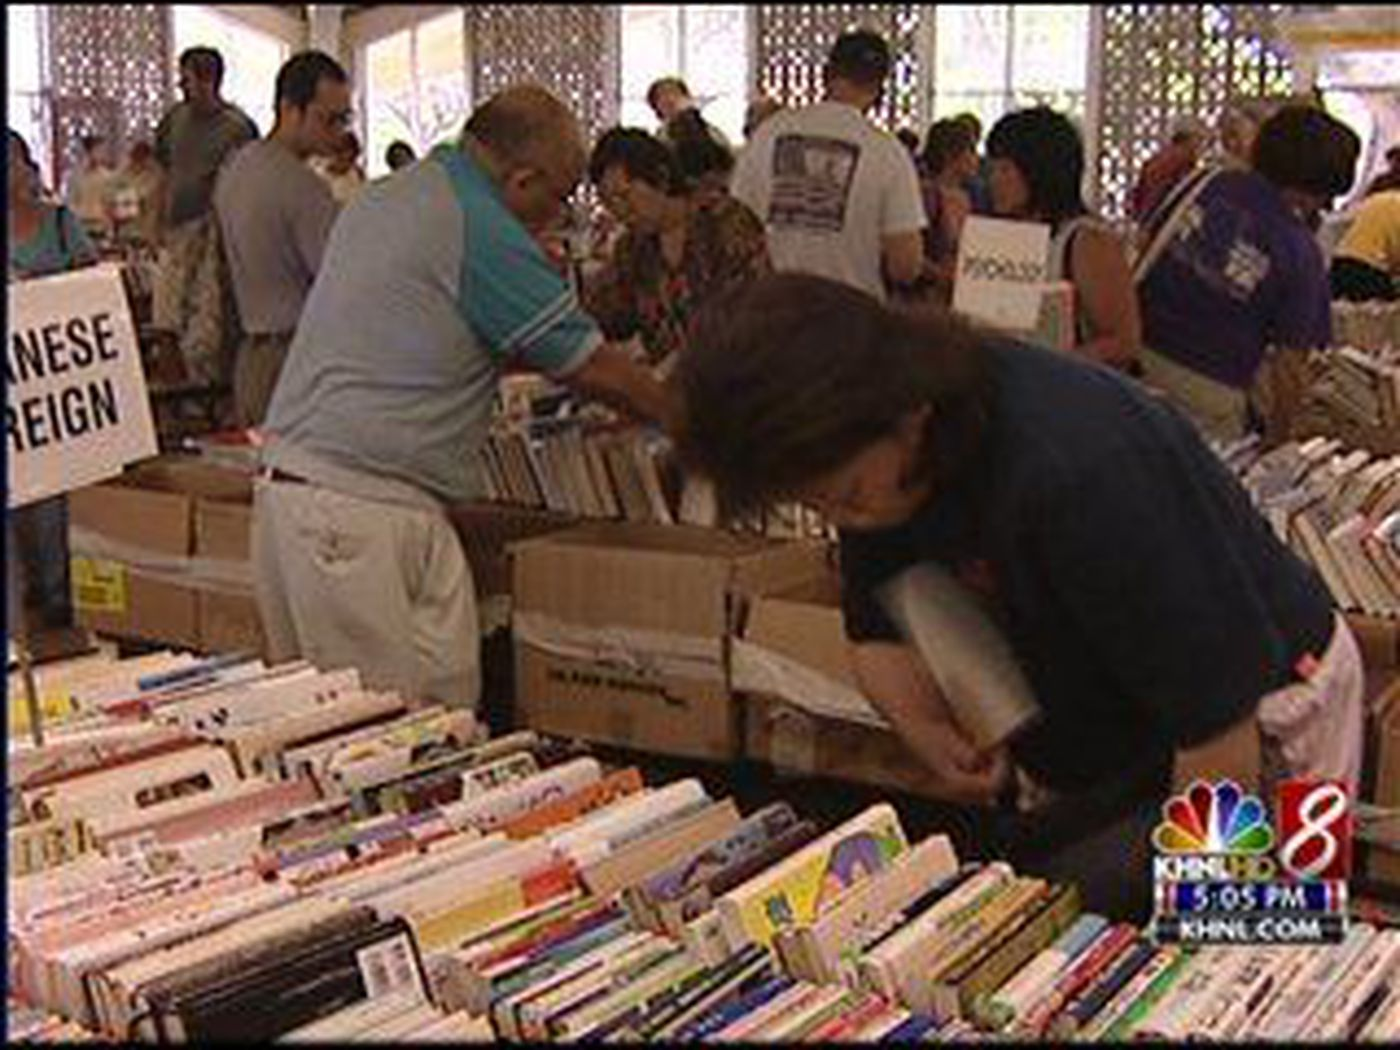 Cheap books draw big dollar signs for public libraries